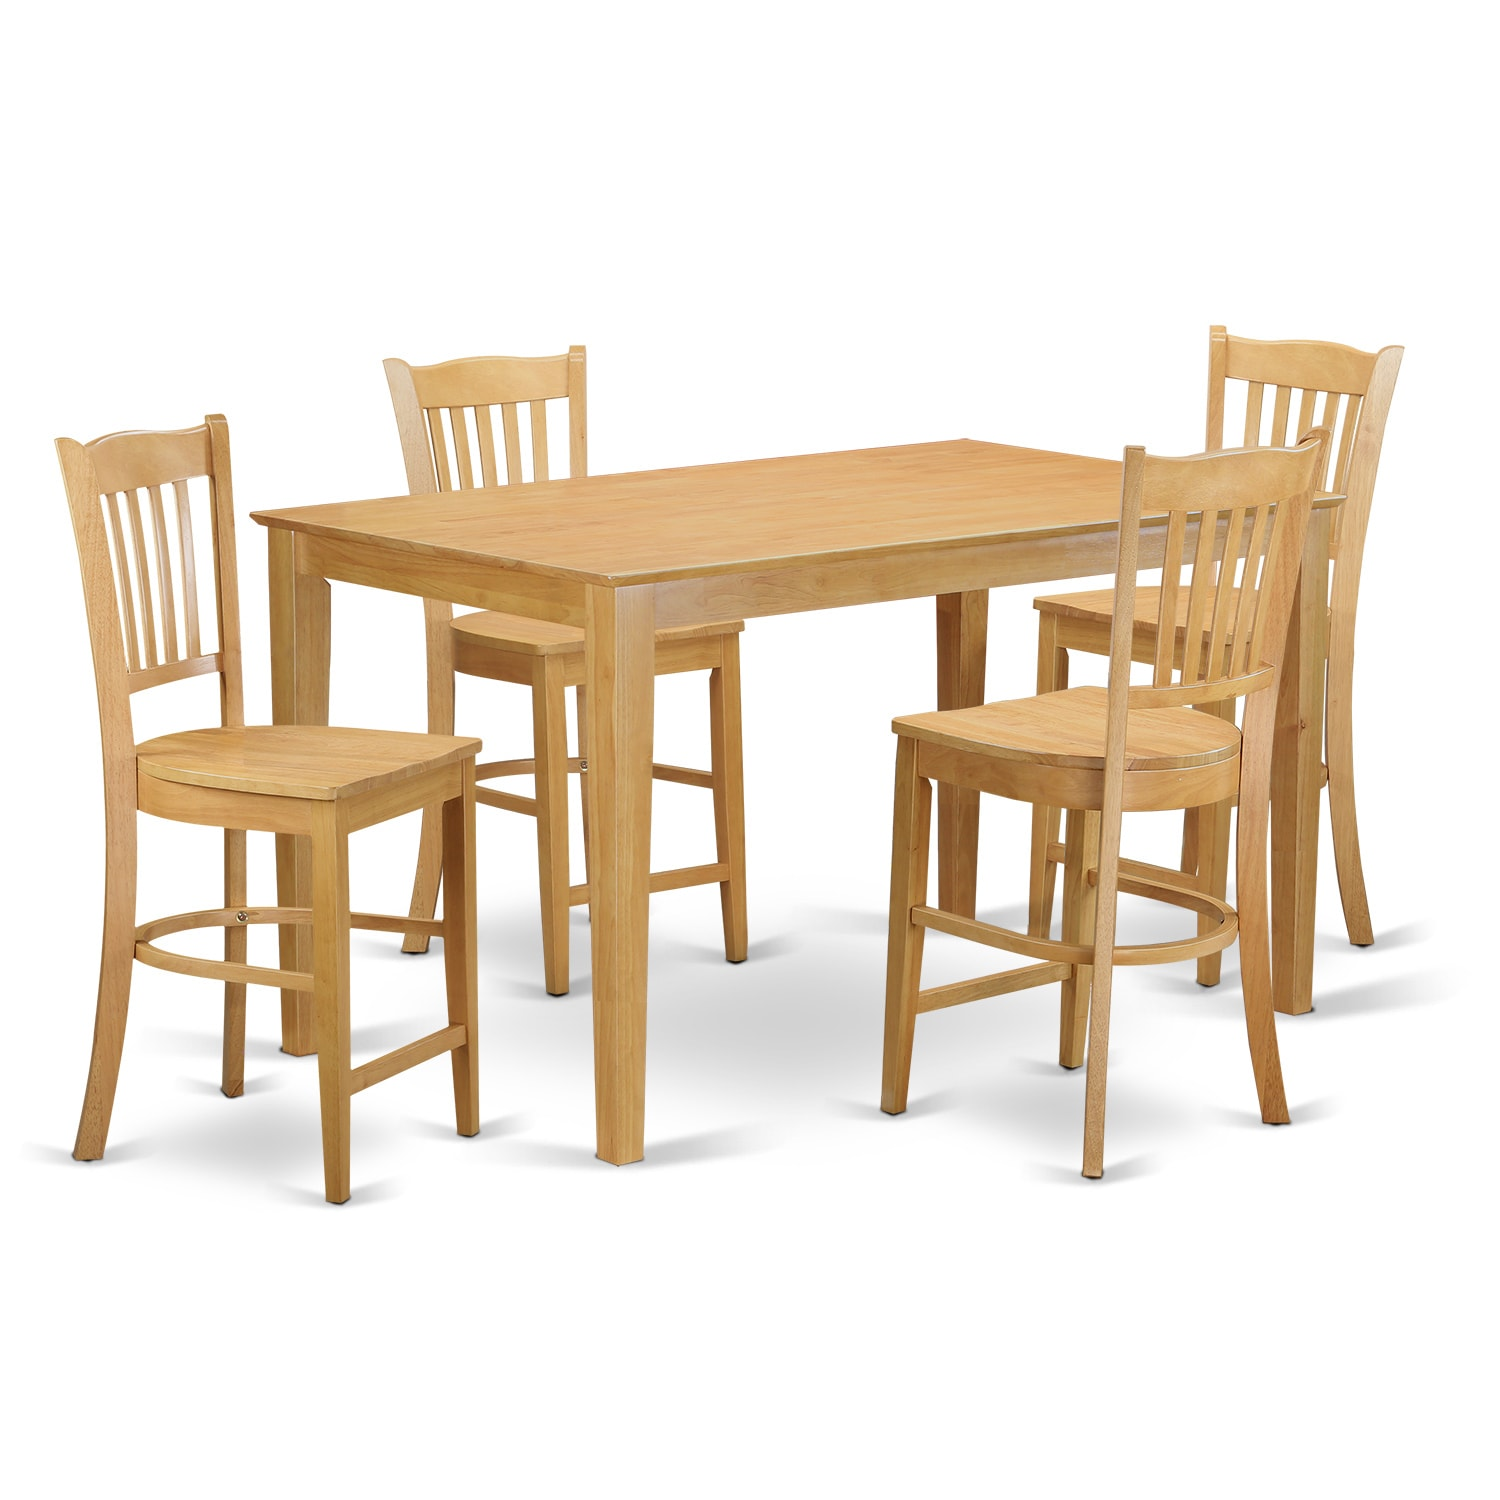 5-piece Natural-colored Rubberwood Counter-height Pub Set...